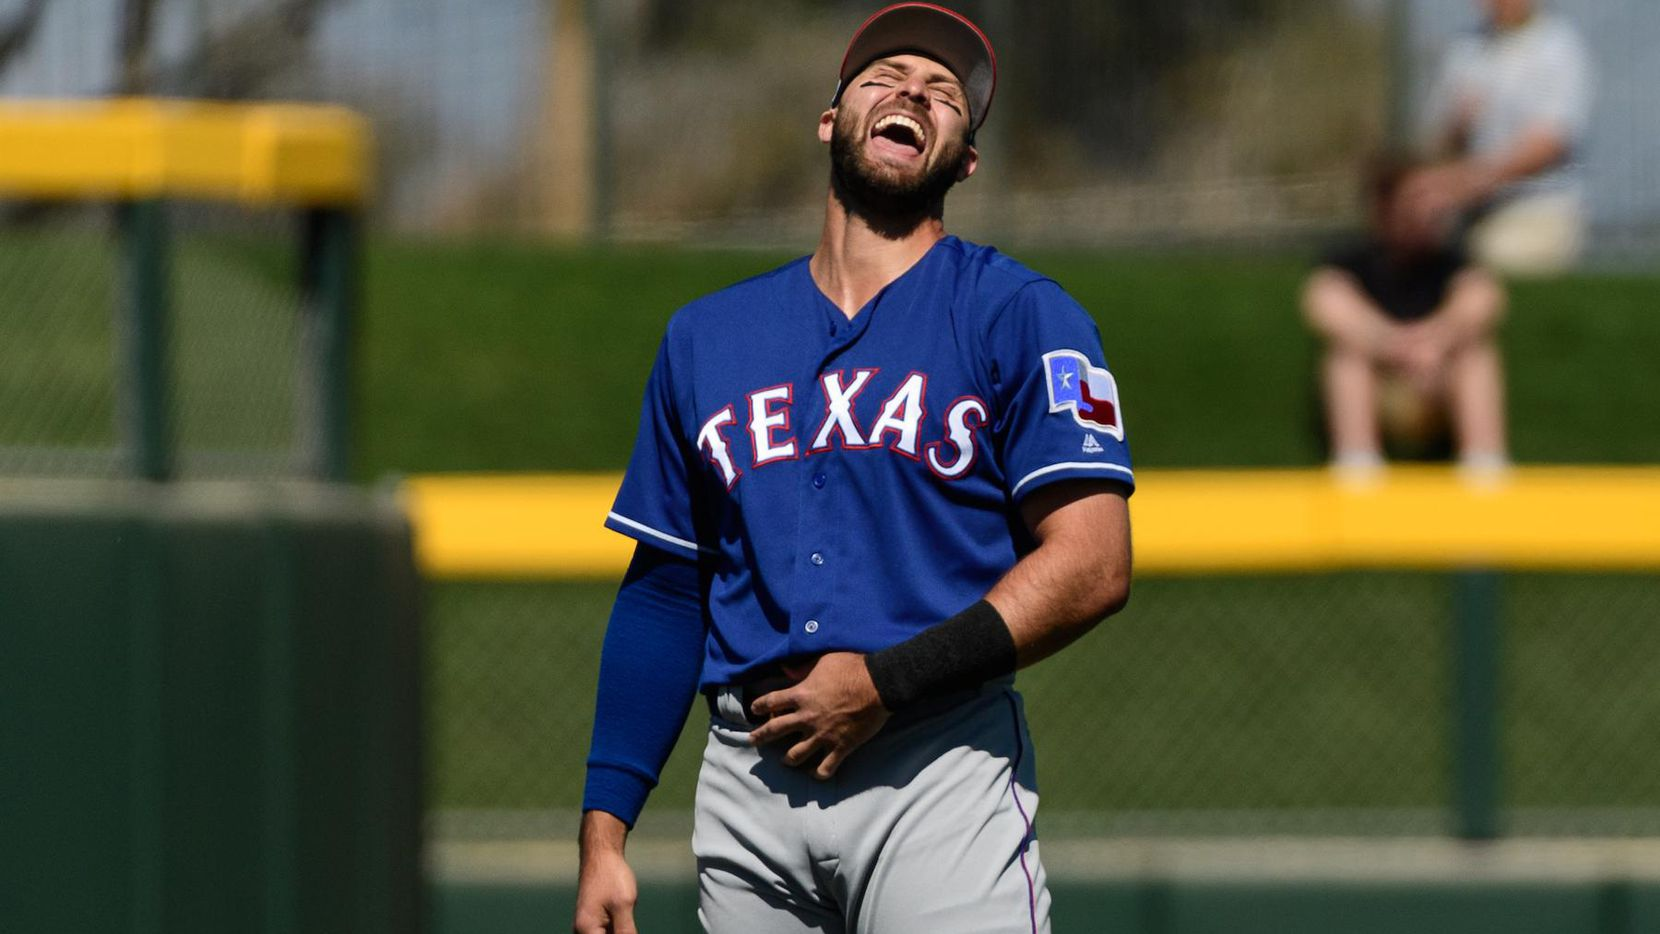 Joey Gallo de los Rangers de Texas.(GETTY IMAGES)